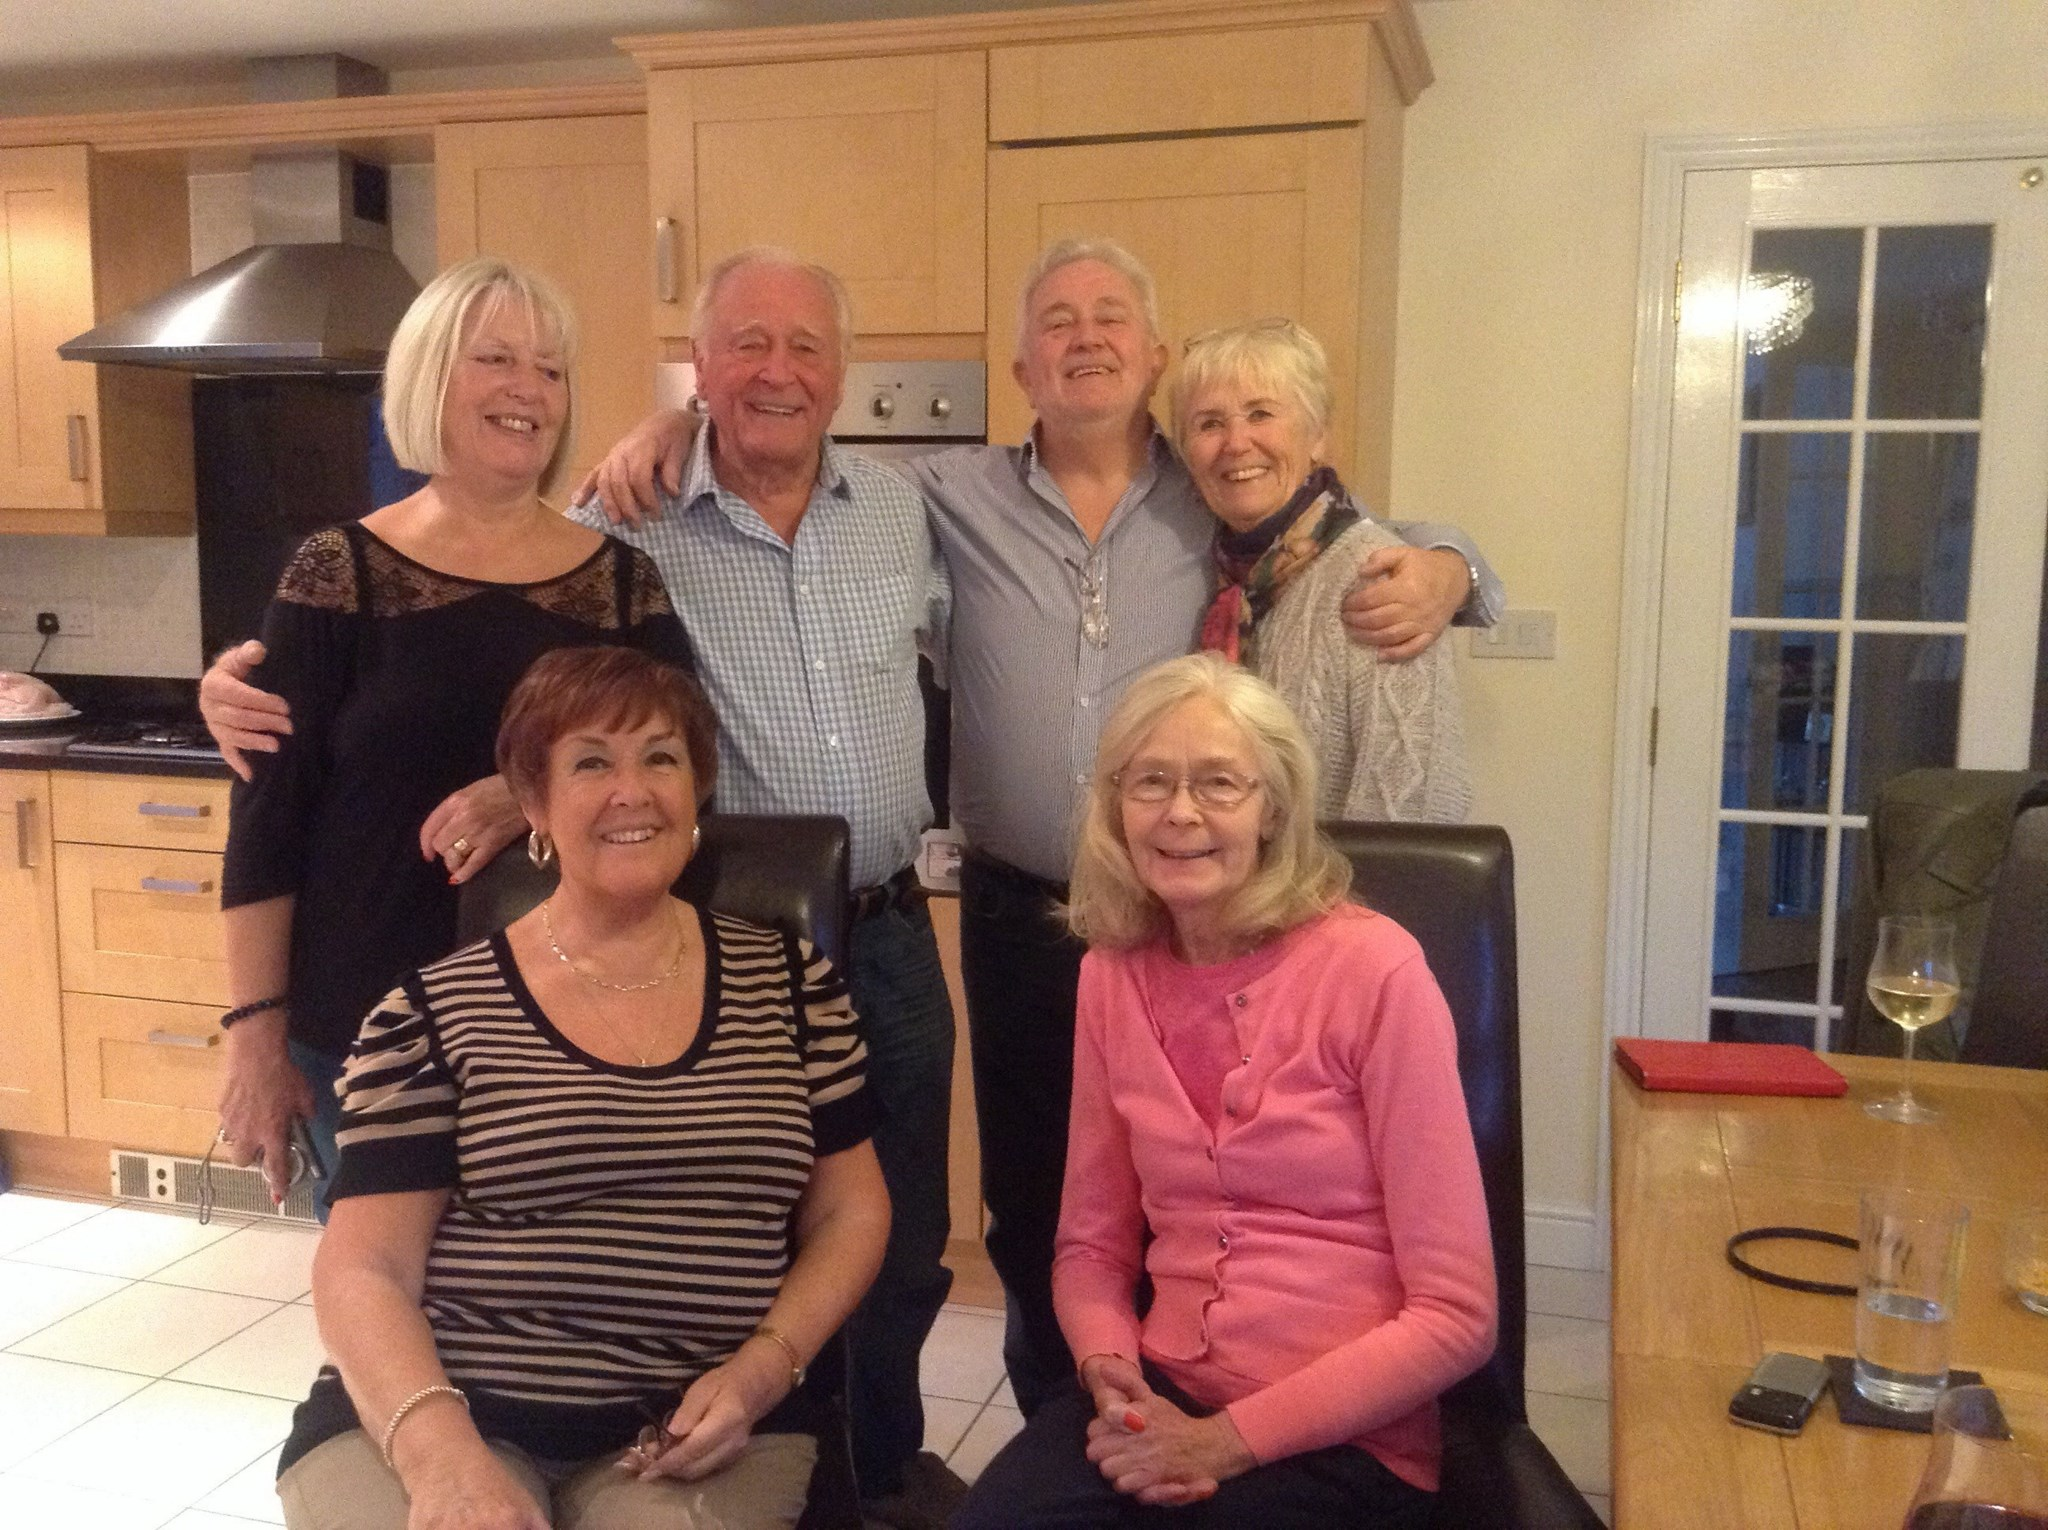 Dad and Mum with his cousins and beloved sister